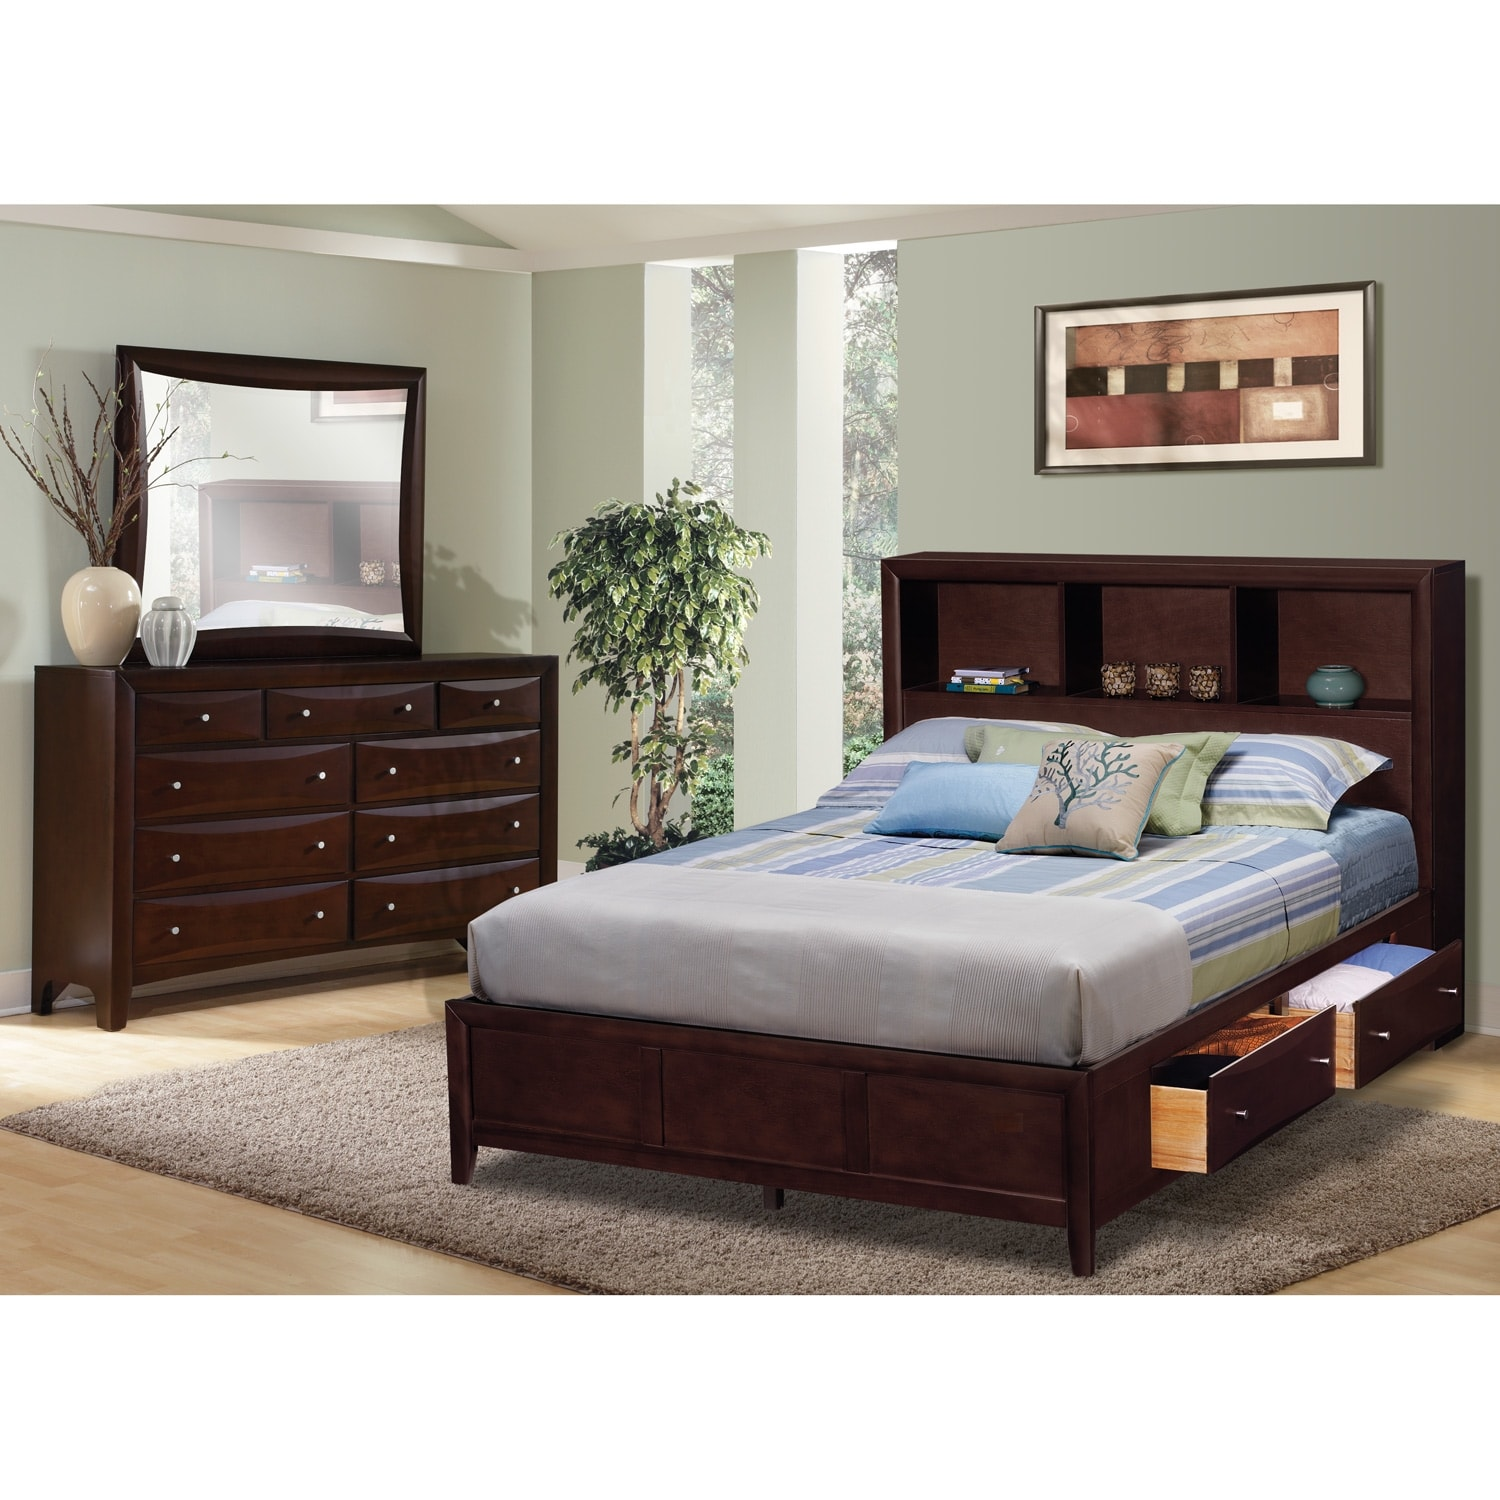 [Clarion 5 Pc. King Wall Bedroom]